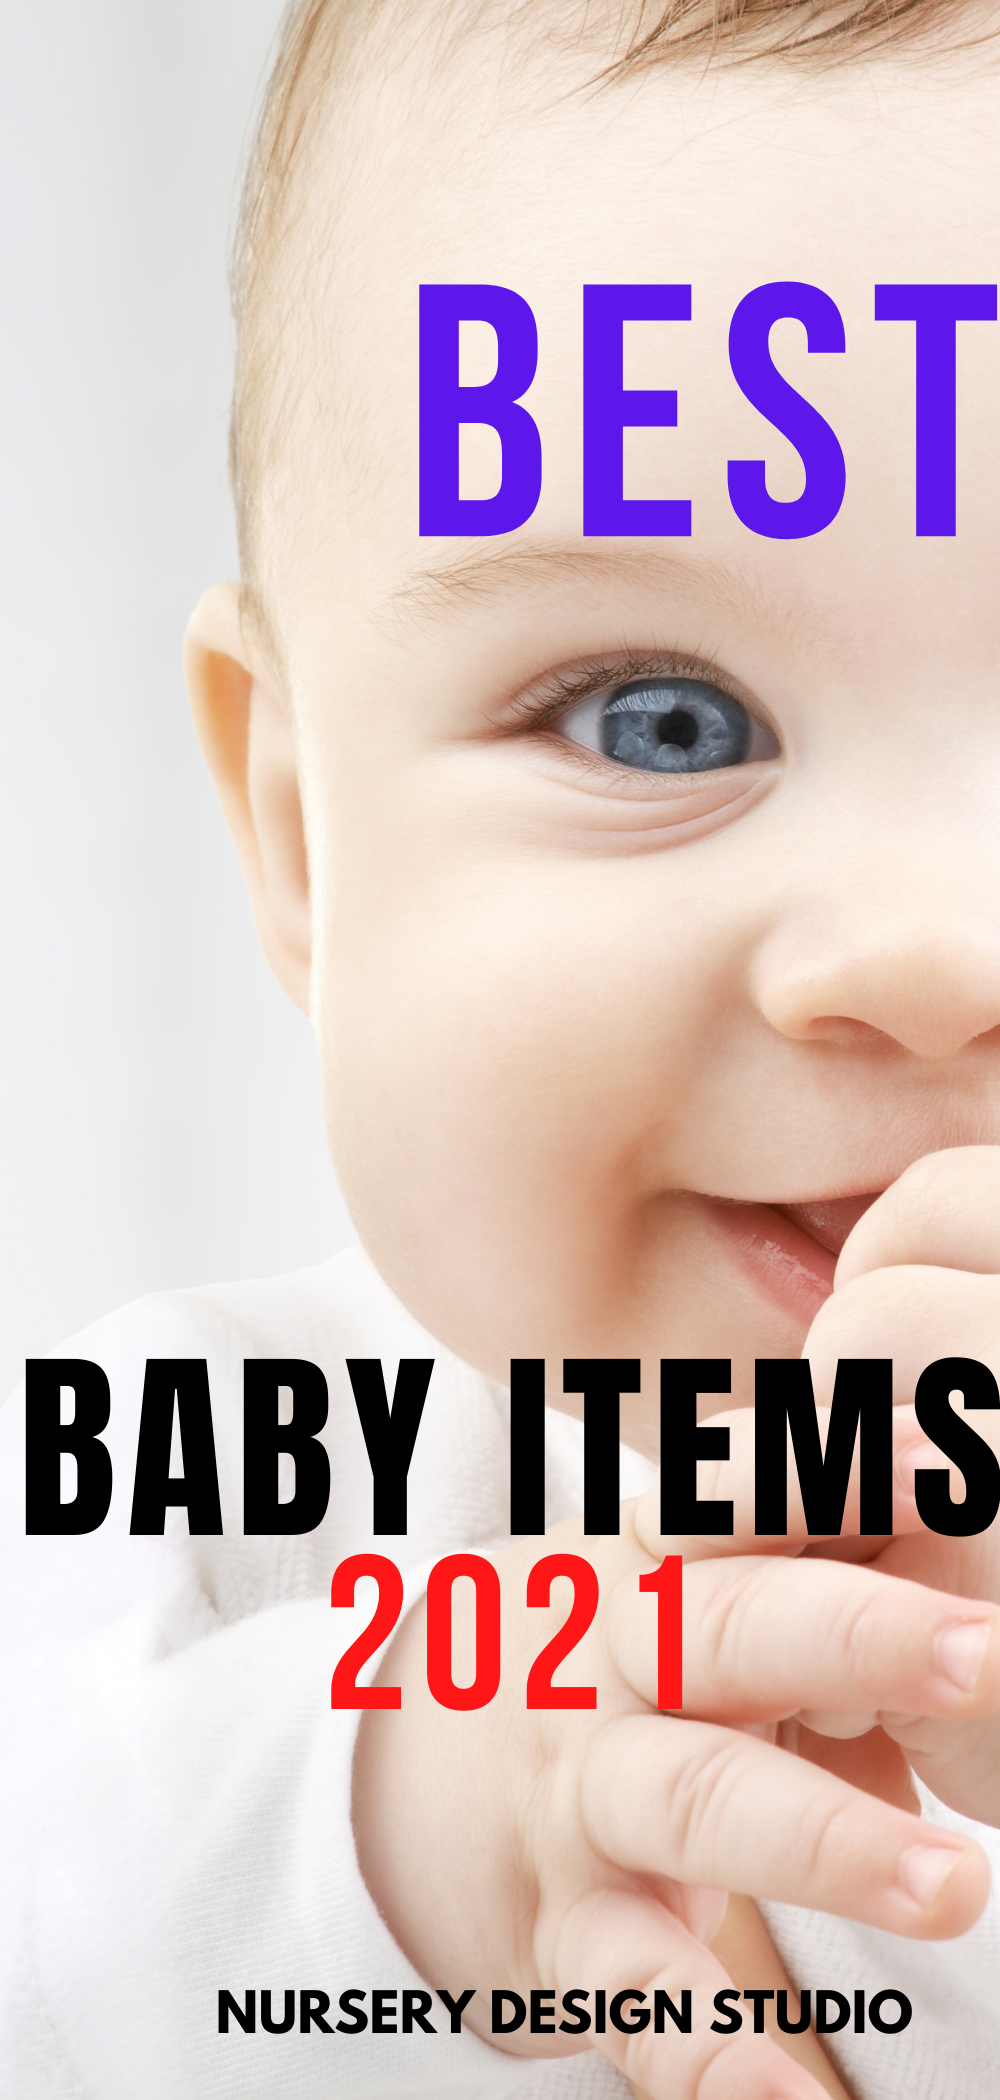 BEST BABY ITEMS